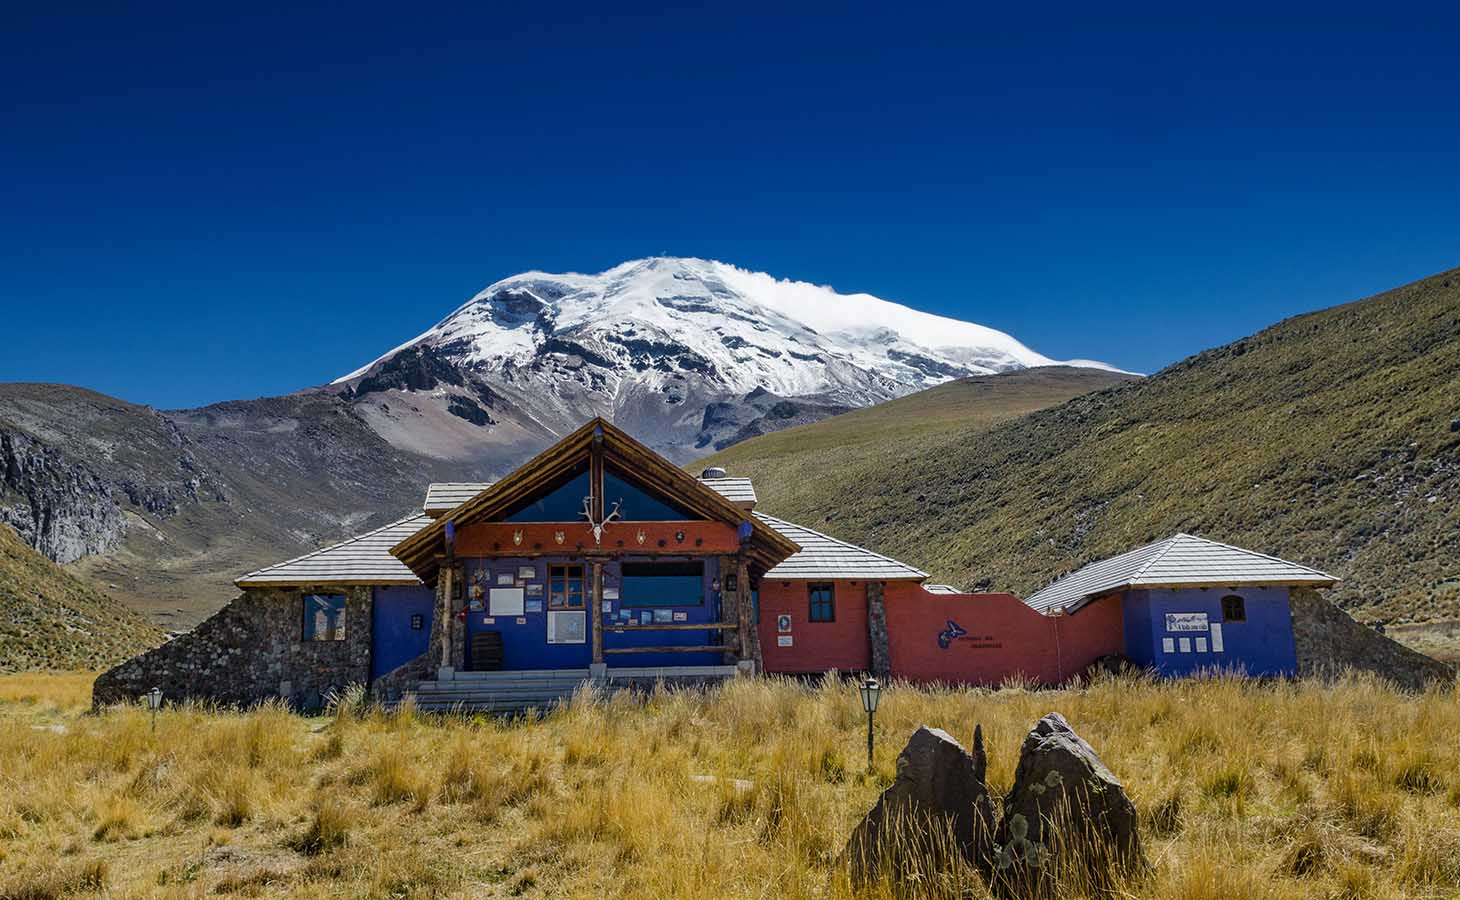 The Andes -